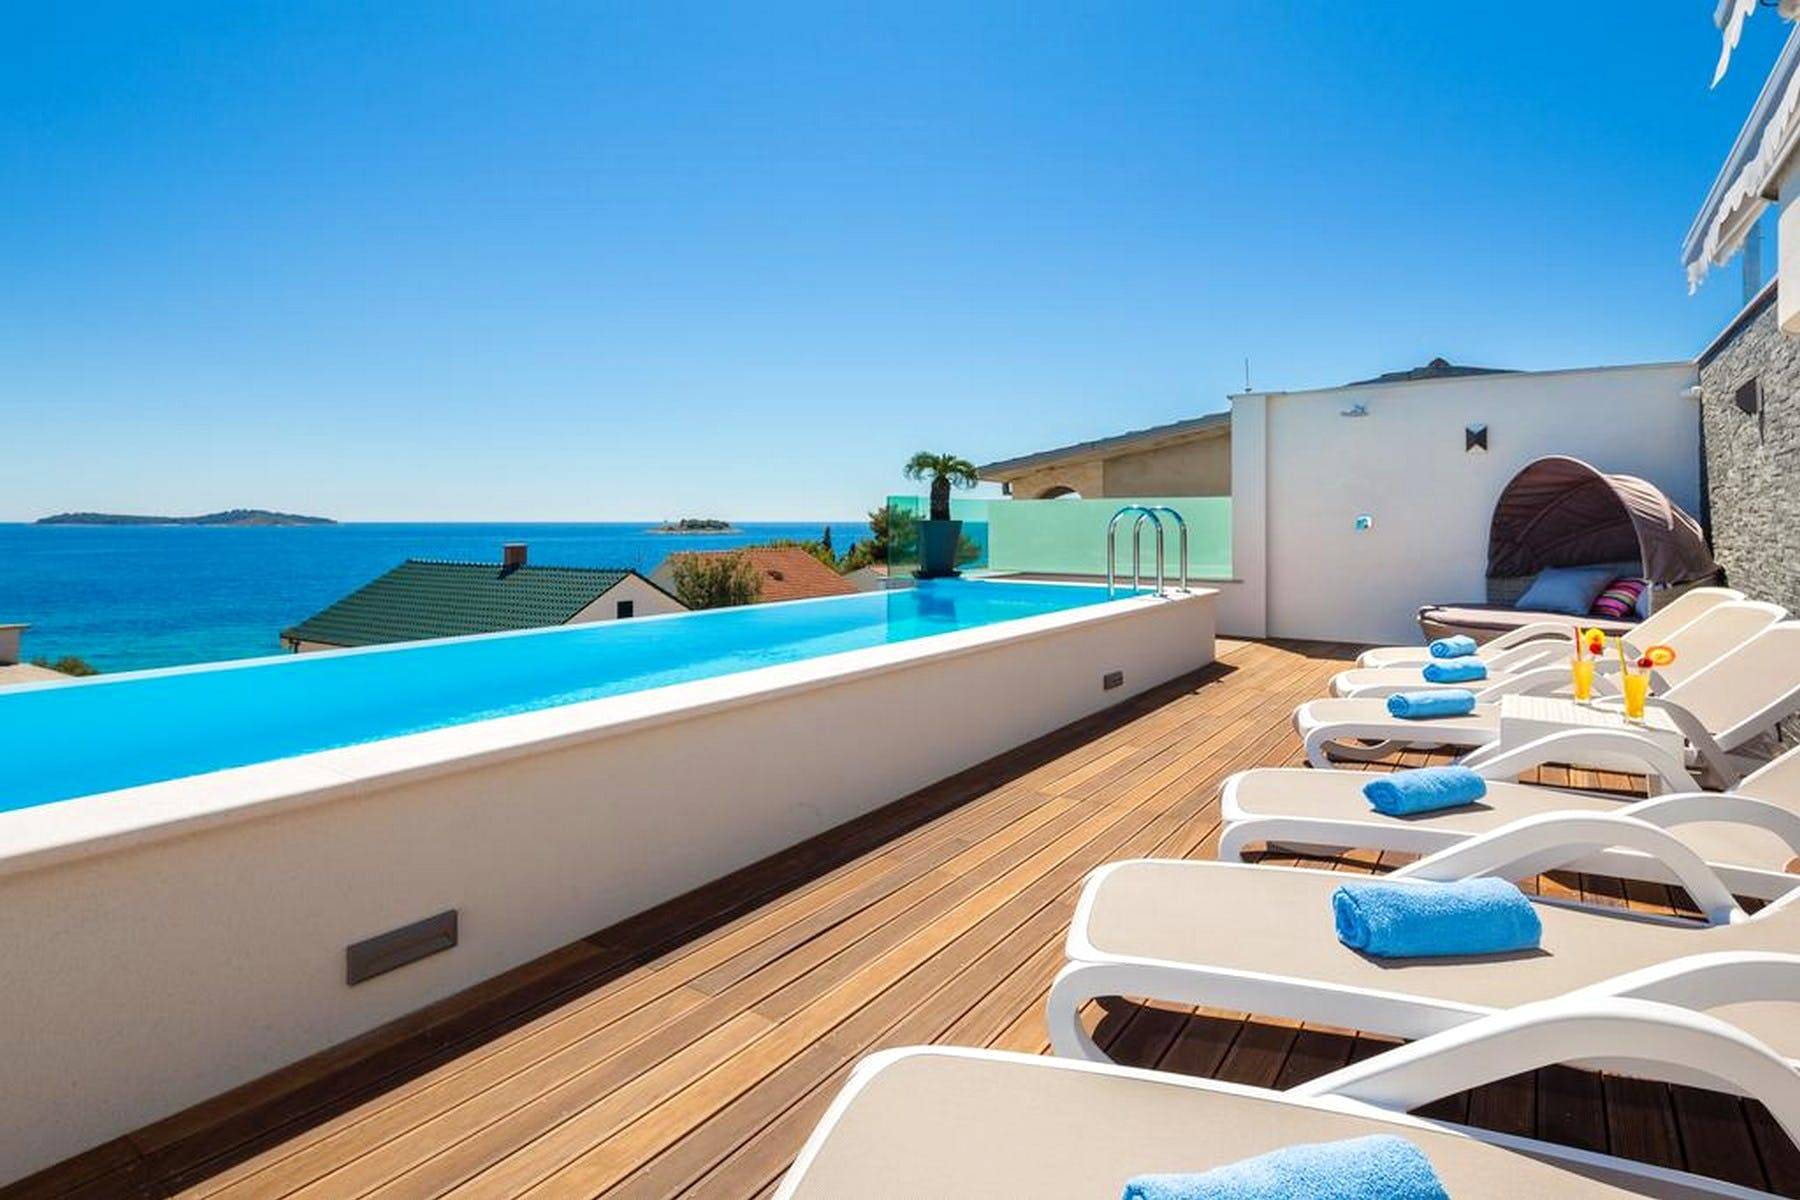 Spacious terrace with swimming pool, sun deck and stunning sea view